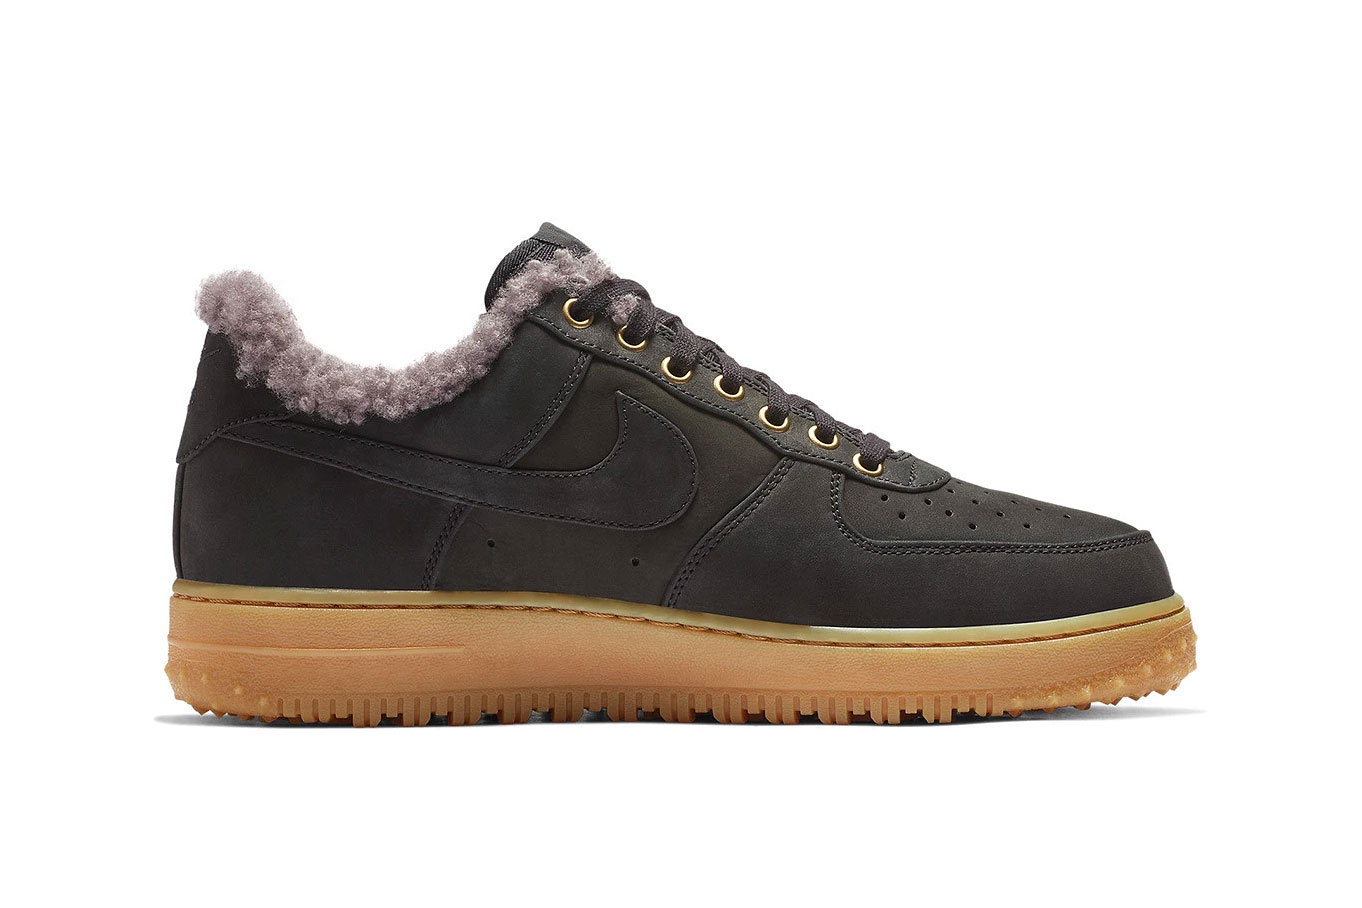 3c3fb9359034 Nike Air Force 1 Low Premium